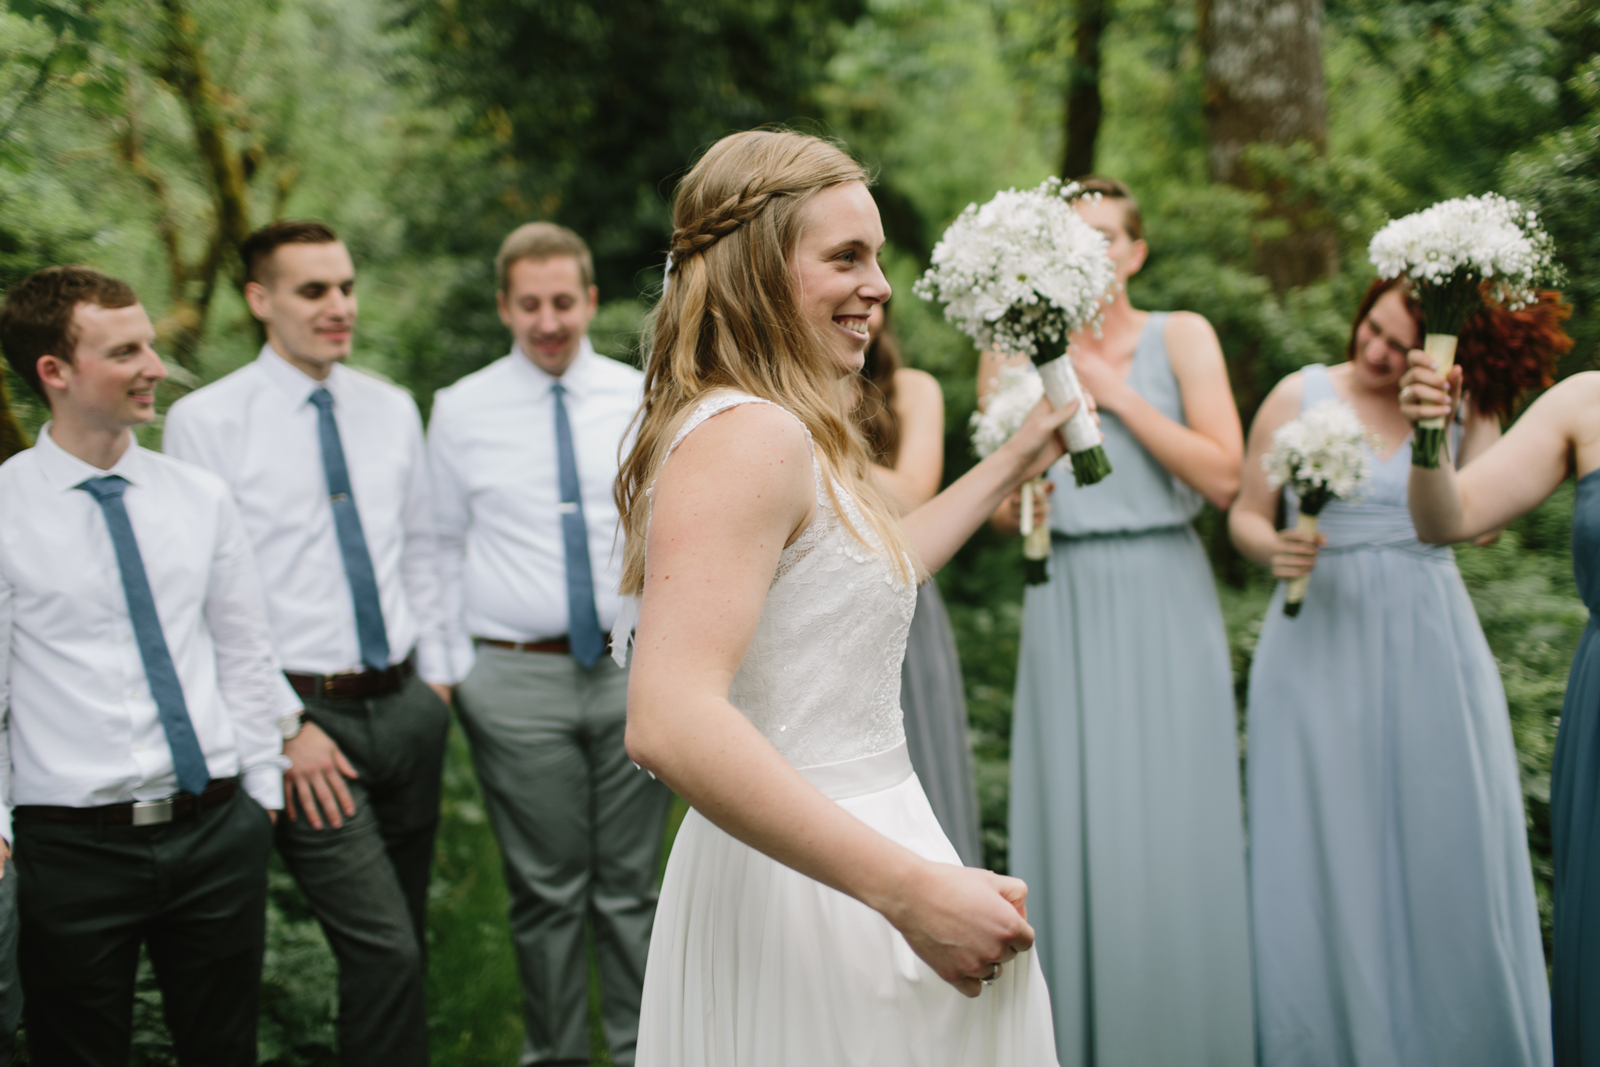 The wedding party celebrates after the wedding ceremony at Bridal Veil Lakes